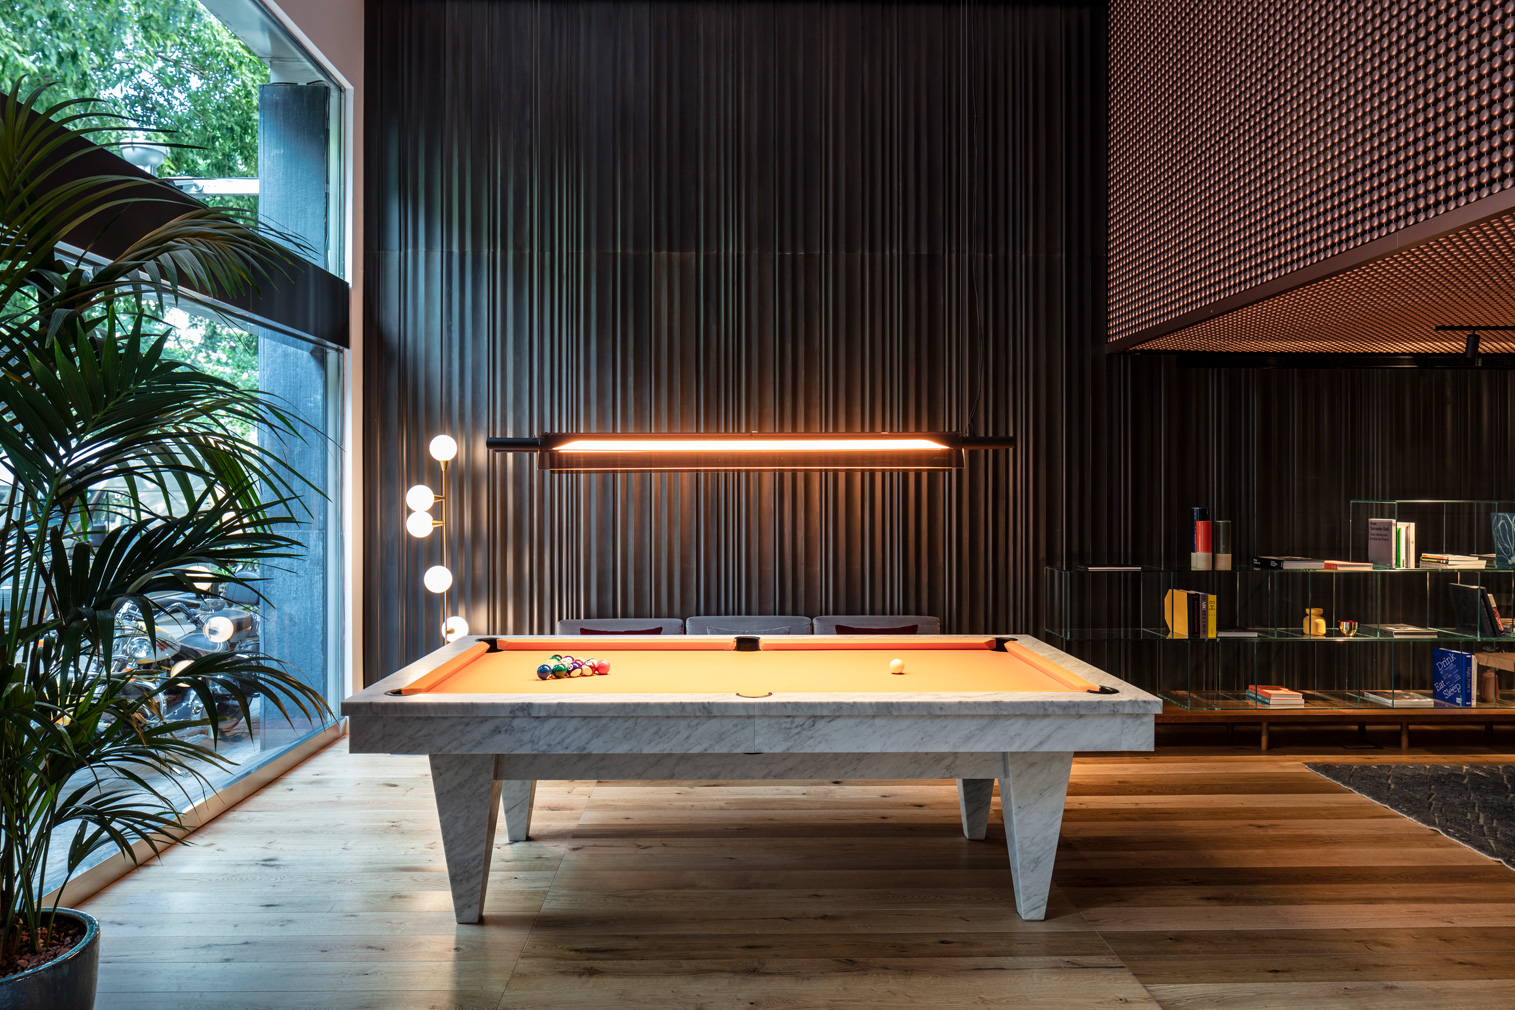 Sir Victor hotel in Barcelona - pool table